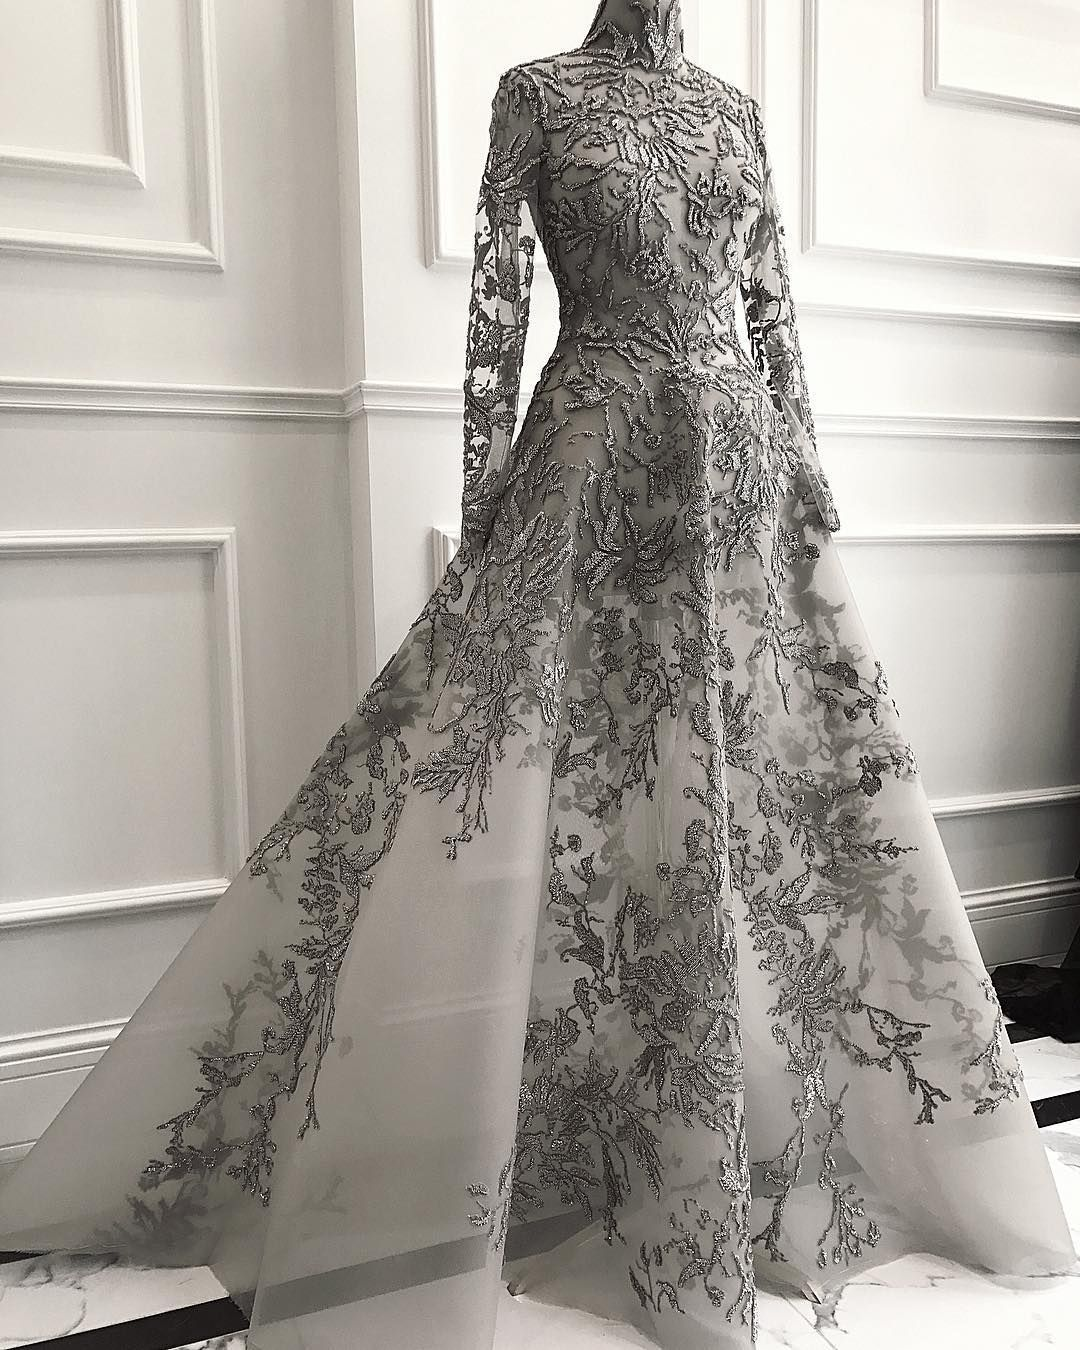 Darius Cordell Long Sleeve Evening Dresses And Formal Ball Gowns Plus Size Bridal Dresses Long Sleeve Wedding Gowns Gowns [ 1350 x 1080 Pixel ]